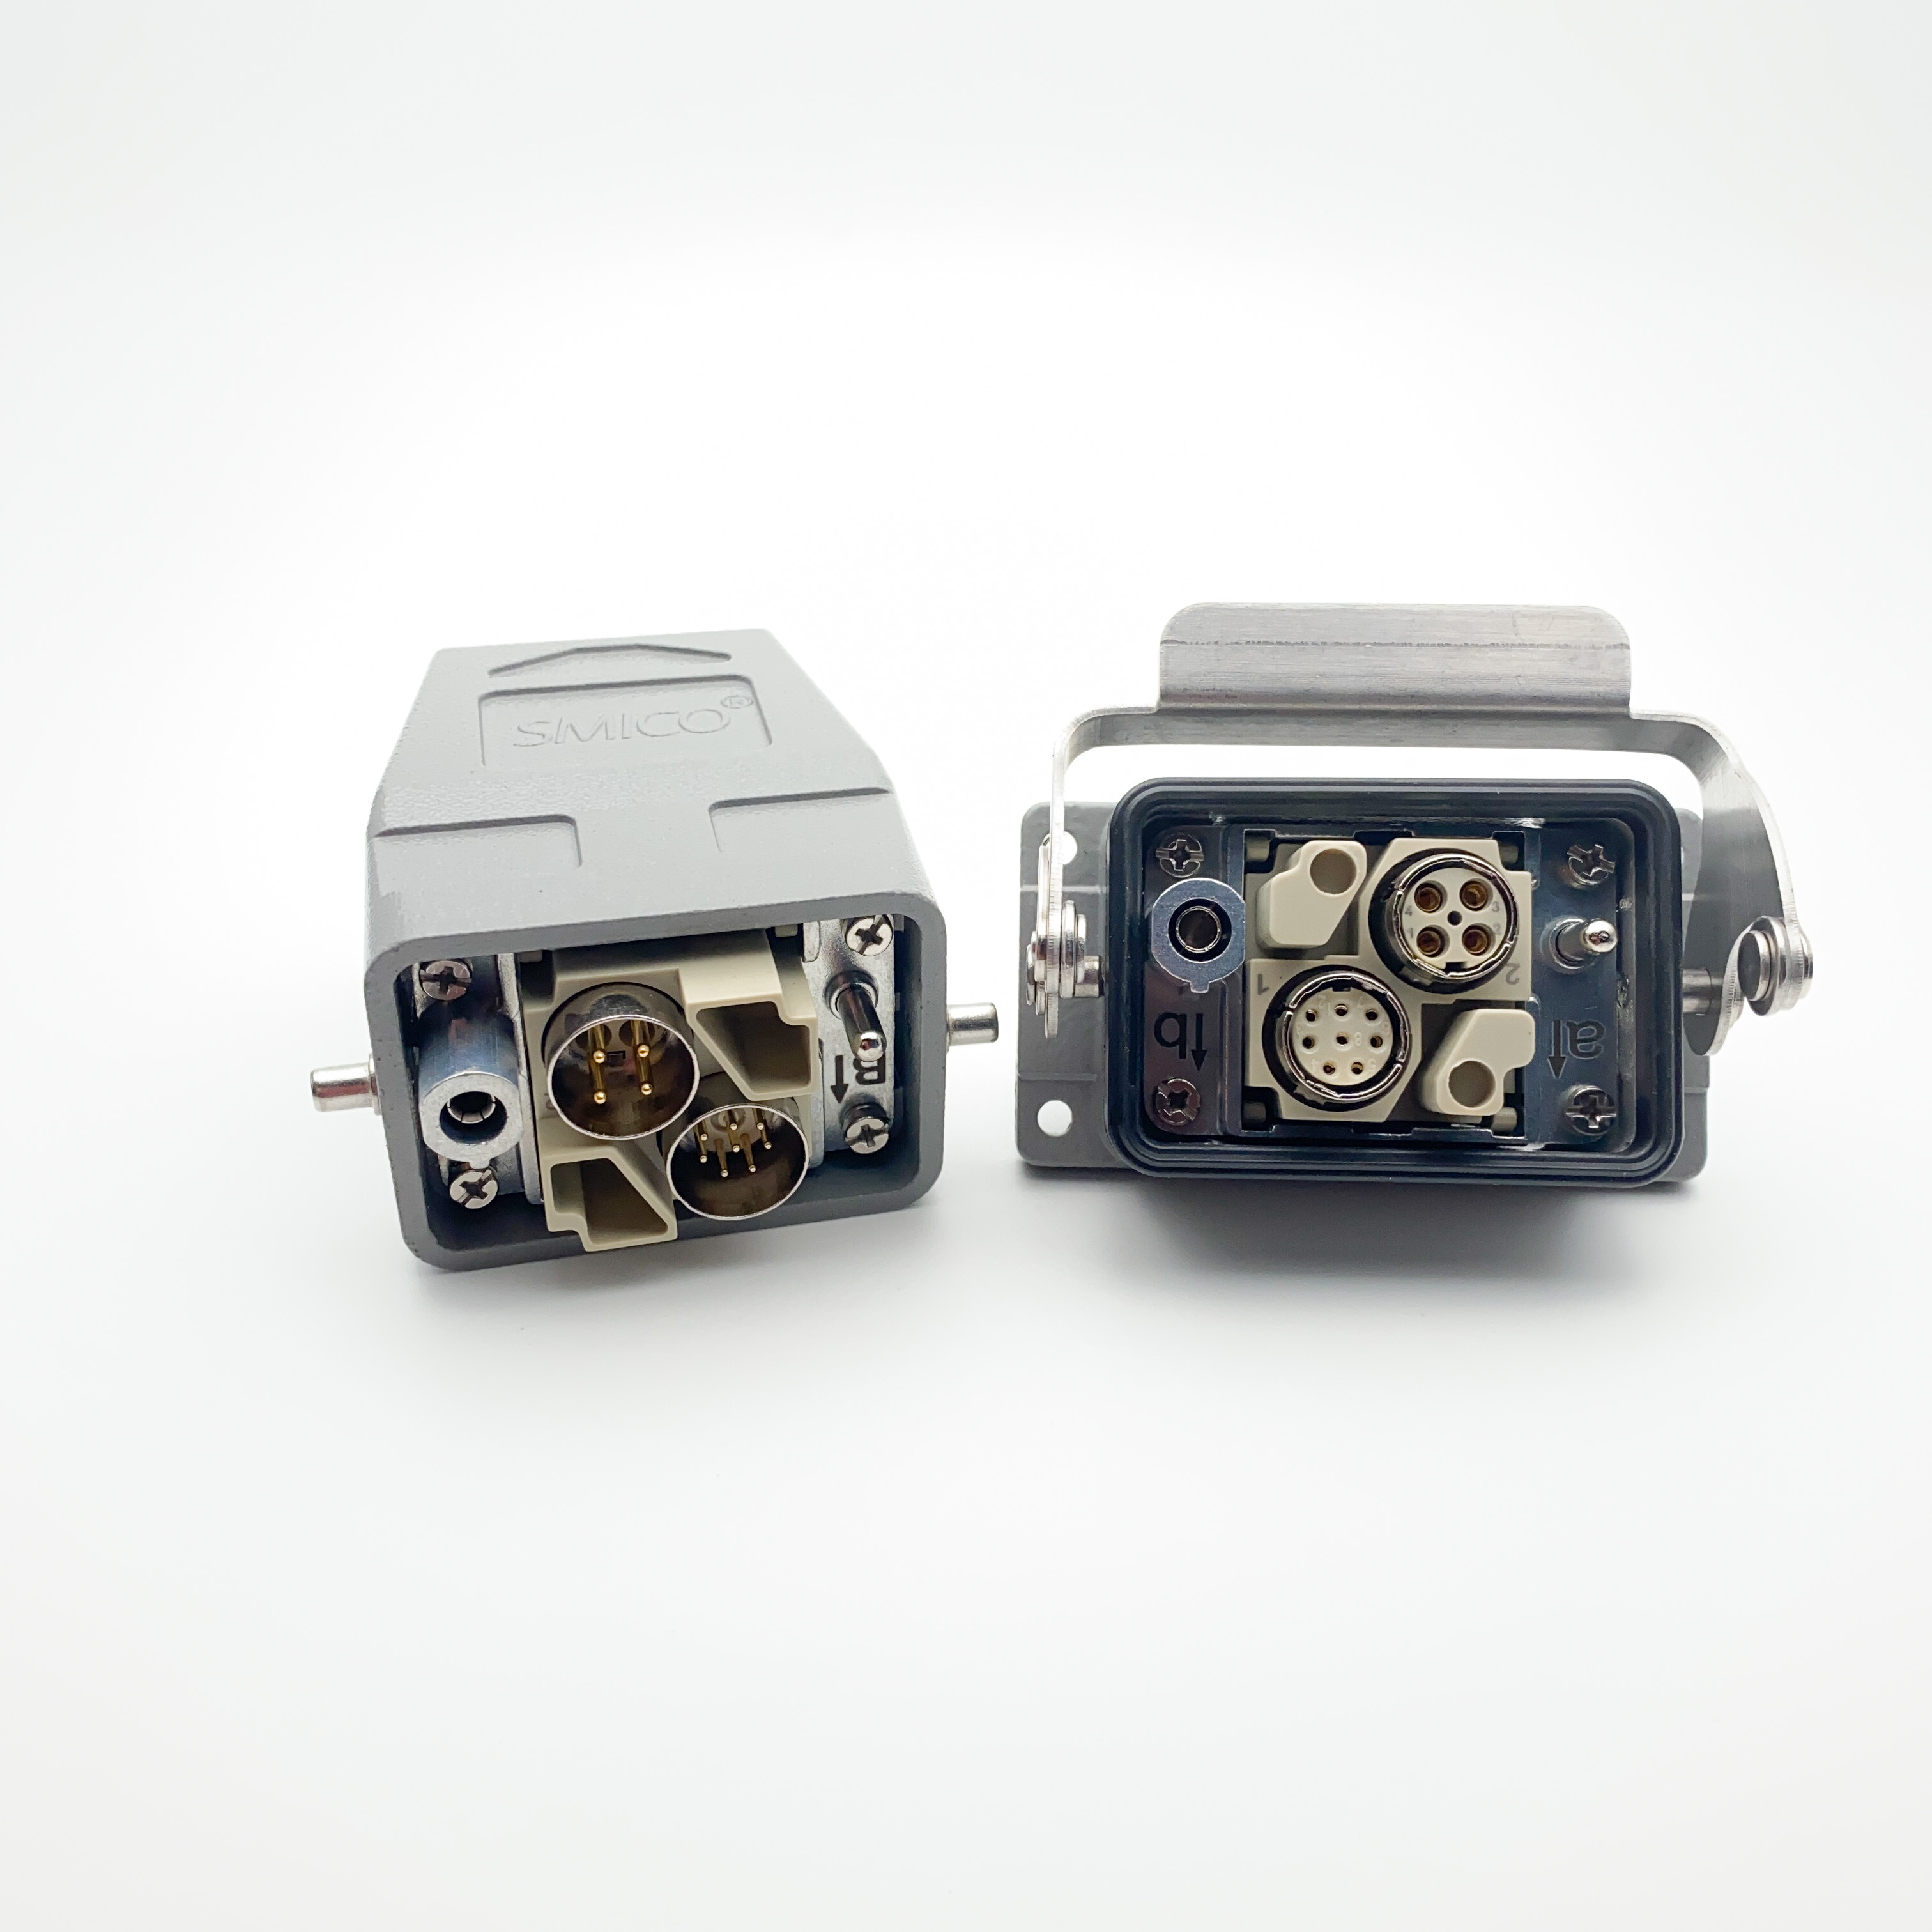 Reliable Heavy Duty Connectors from SMICO Connectivity